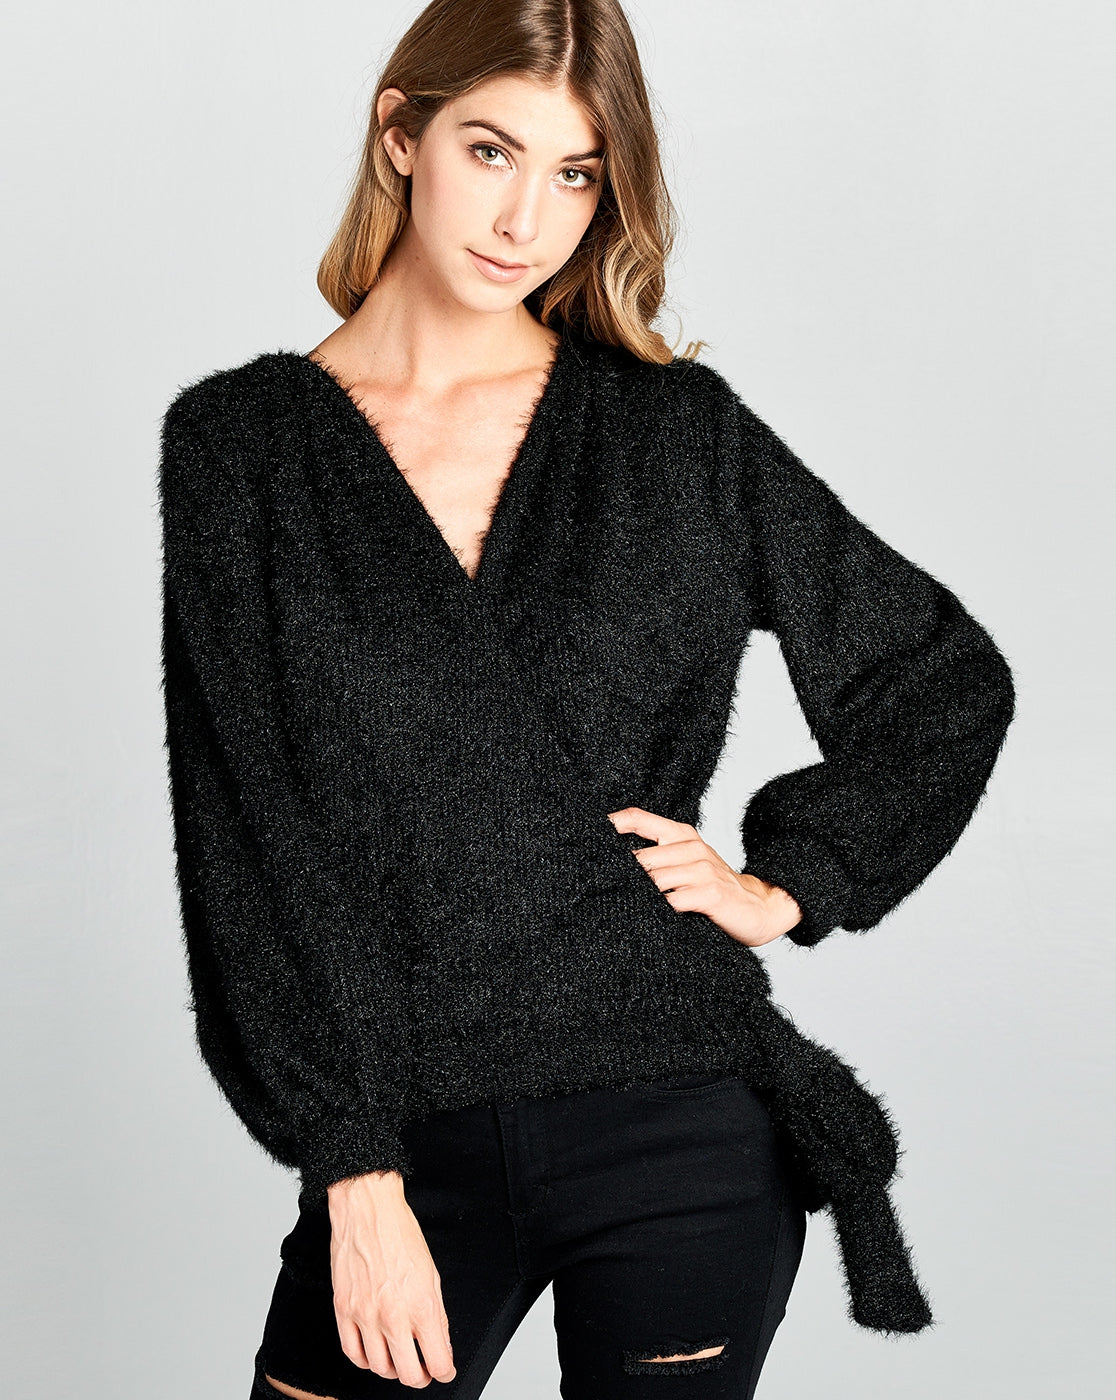 Let Yourself Shine Sweater in Black - MIA Boutique LLC